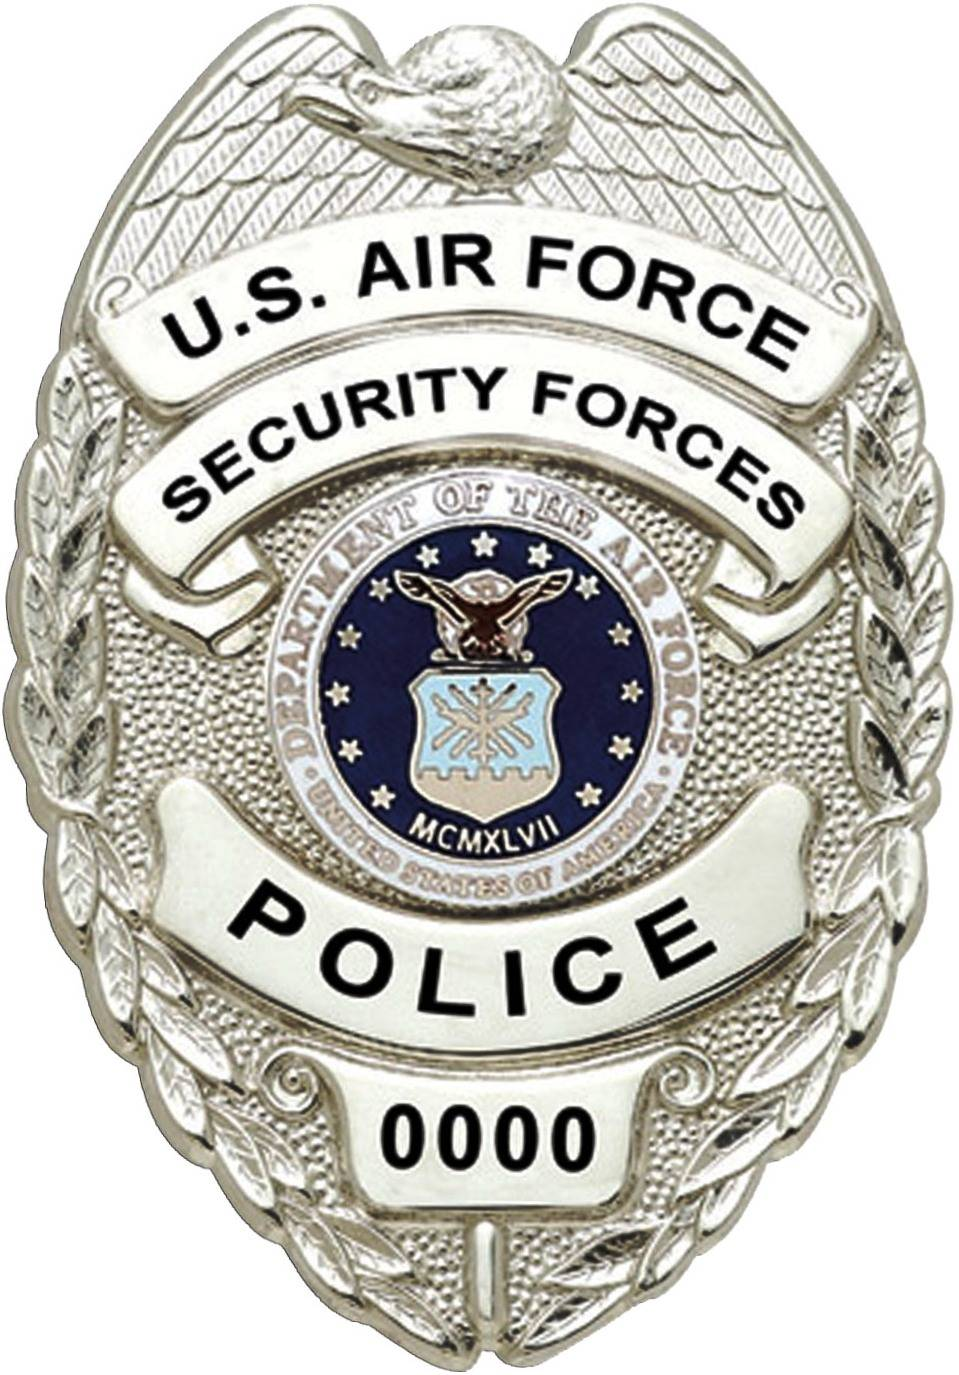 US Air Force Civilian Police badge